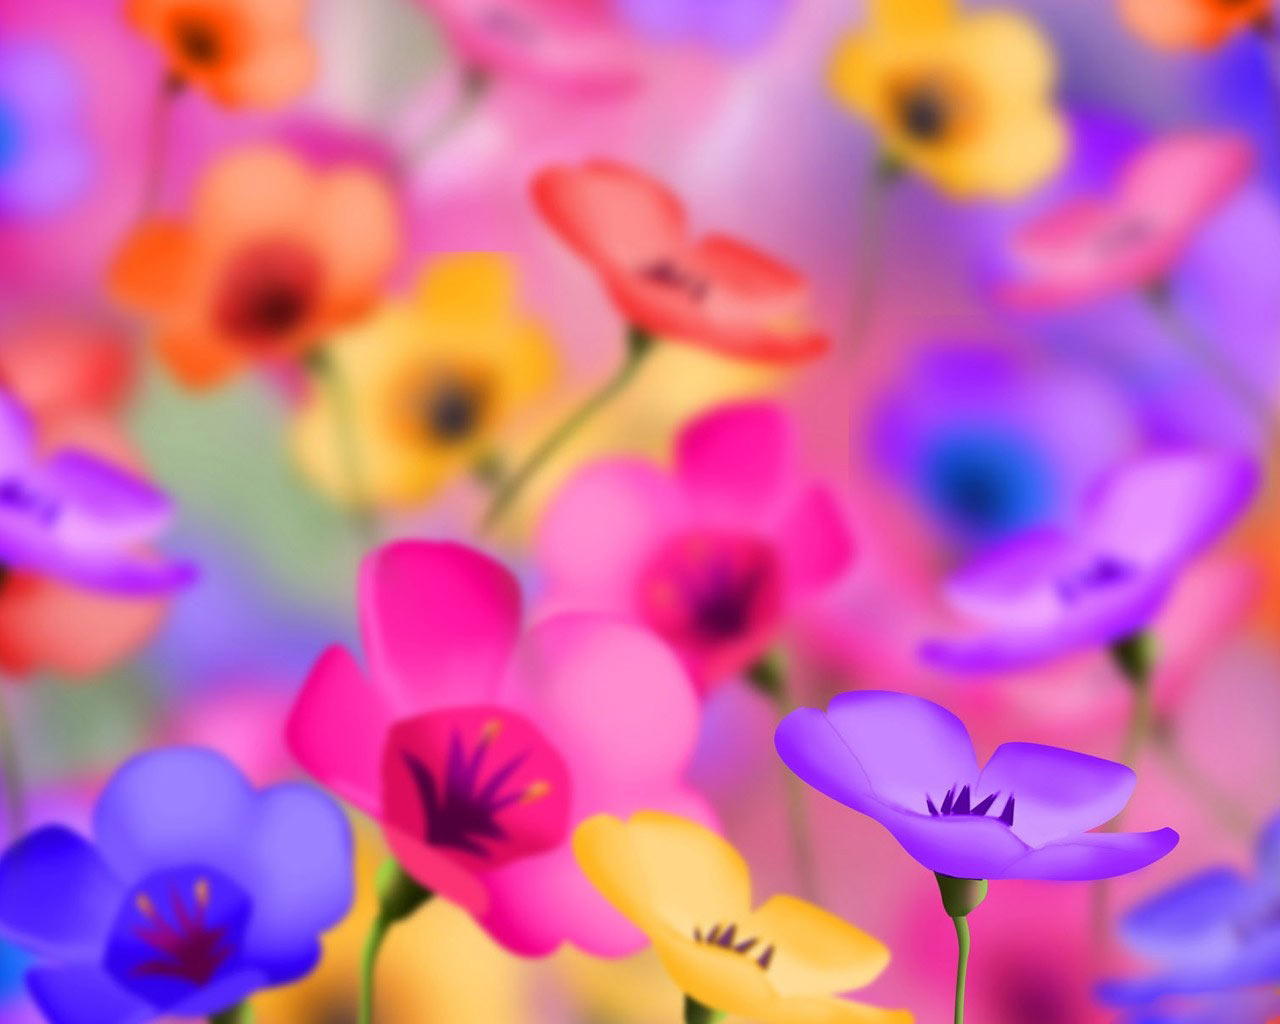 Beautiful Flower Background 9650 Hd Wallpapers in Flowers   Imagesci 1280x1024